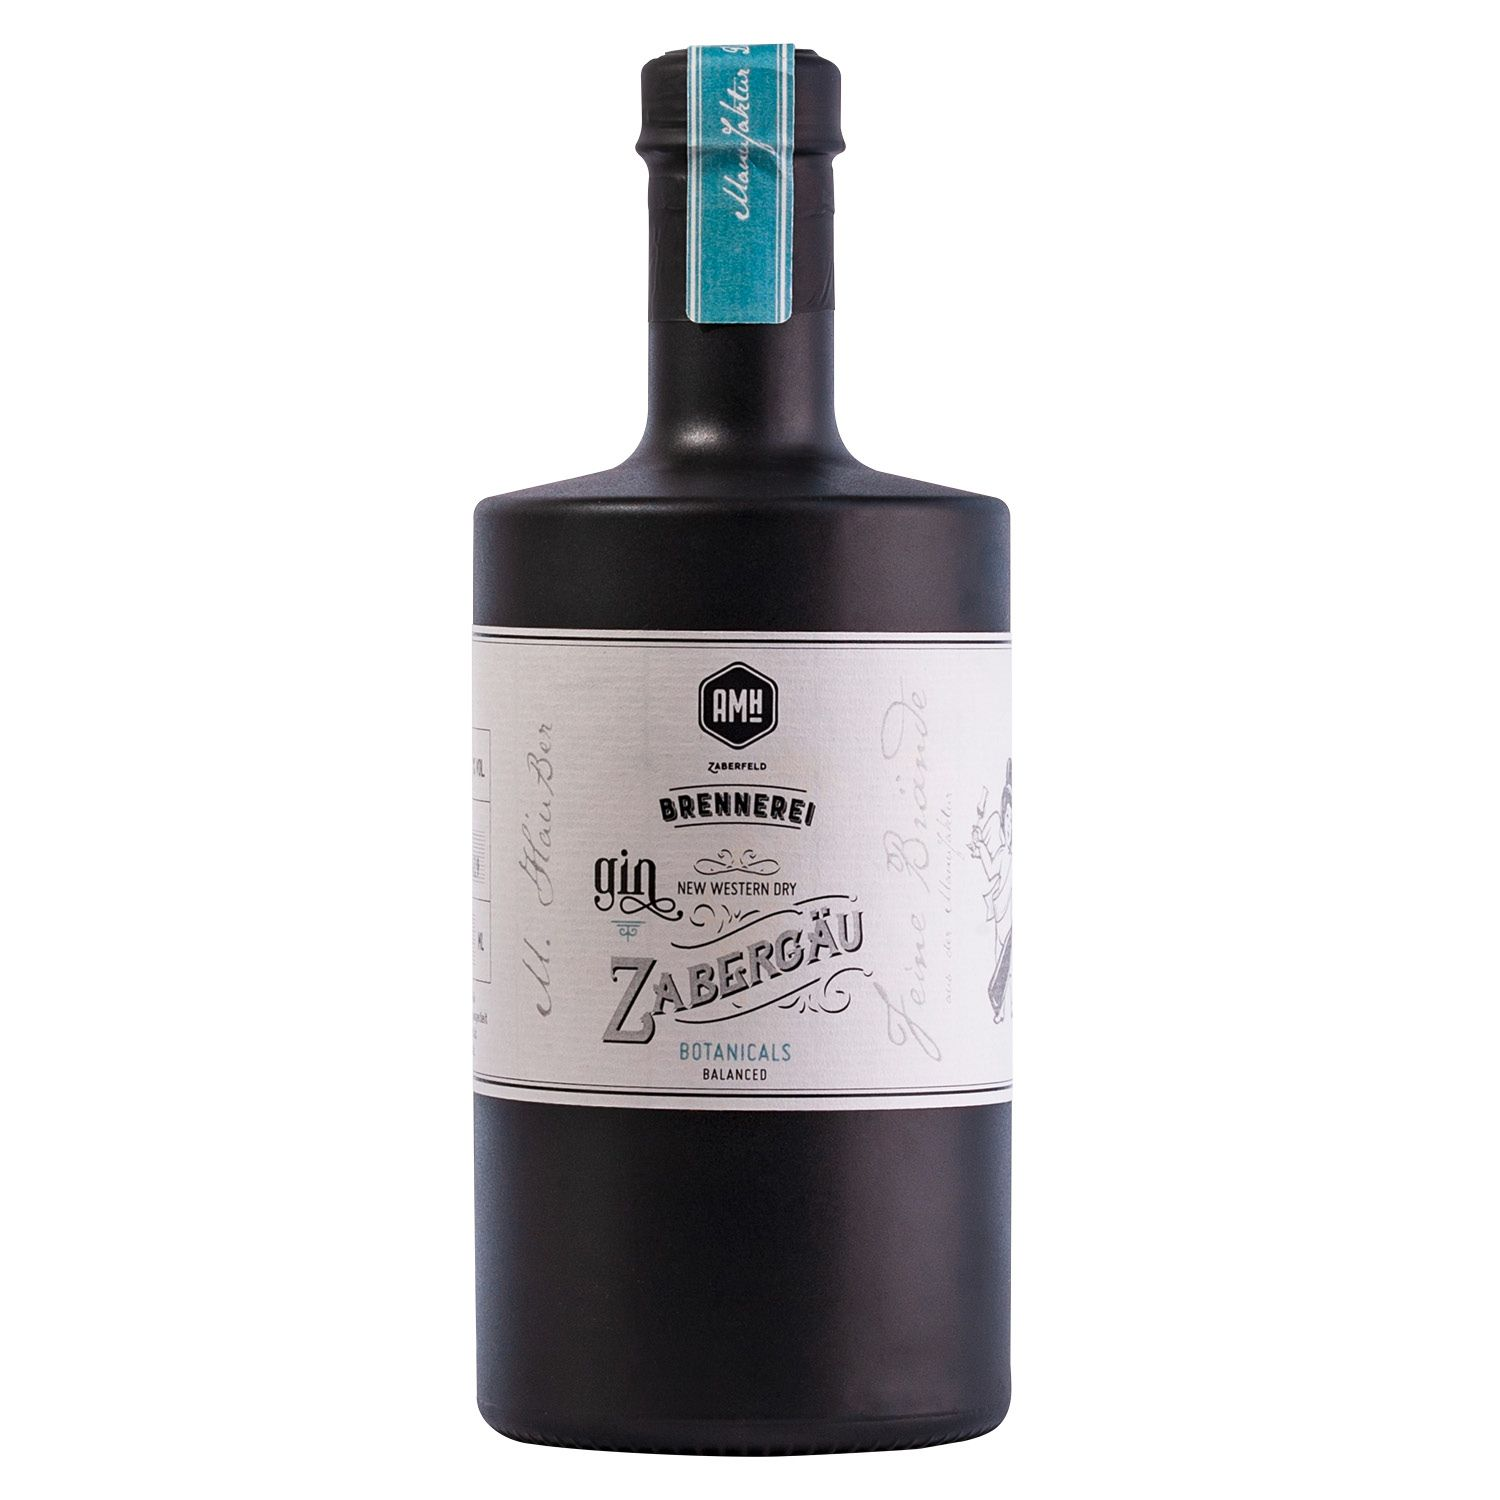 New Western Dry Gin 0,5 l